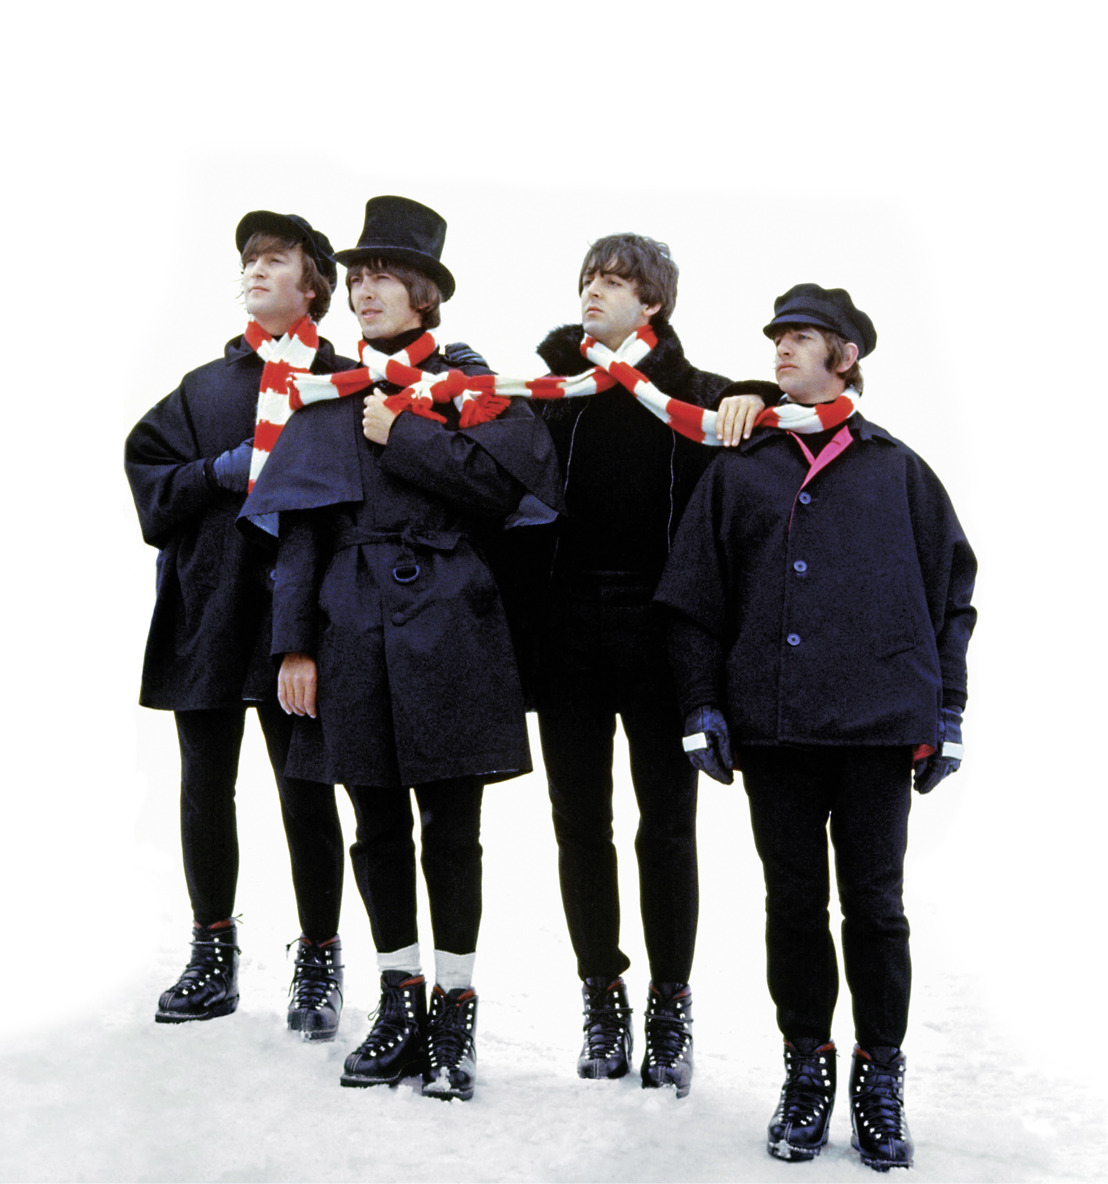 Merry Christmas from The Beatles